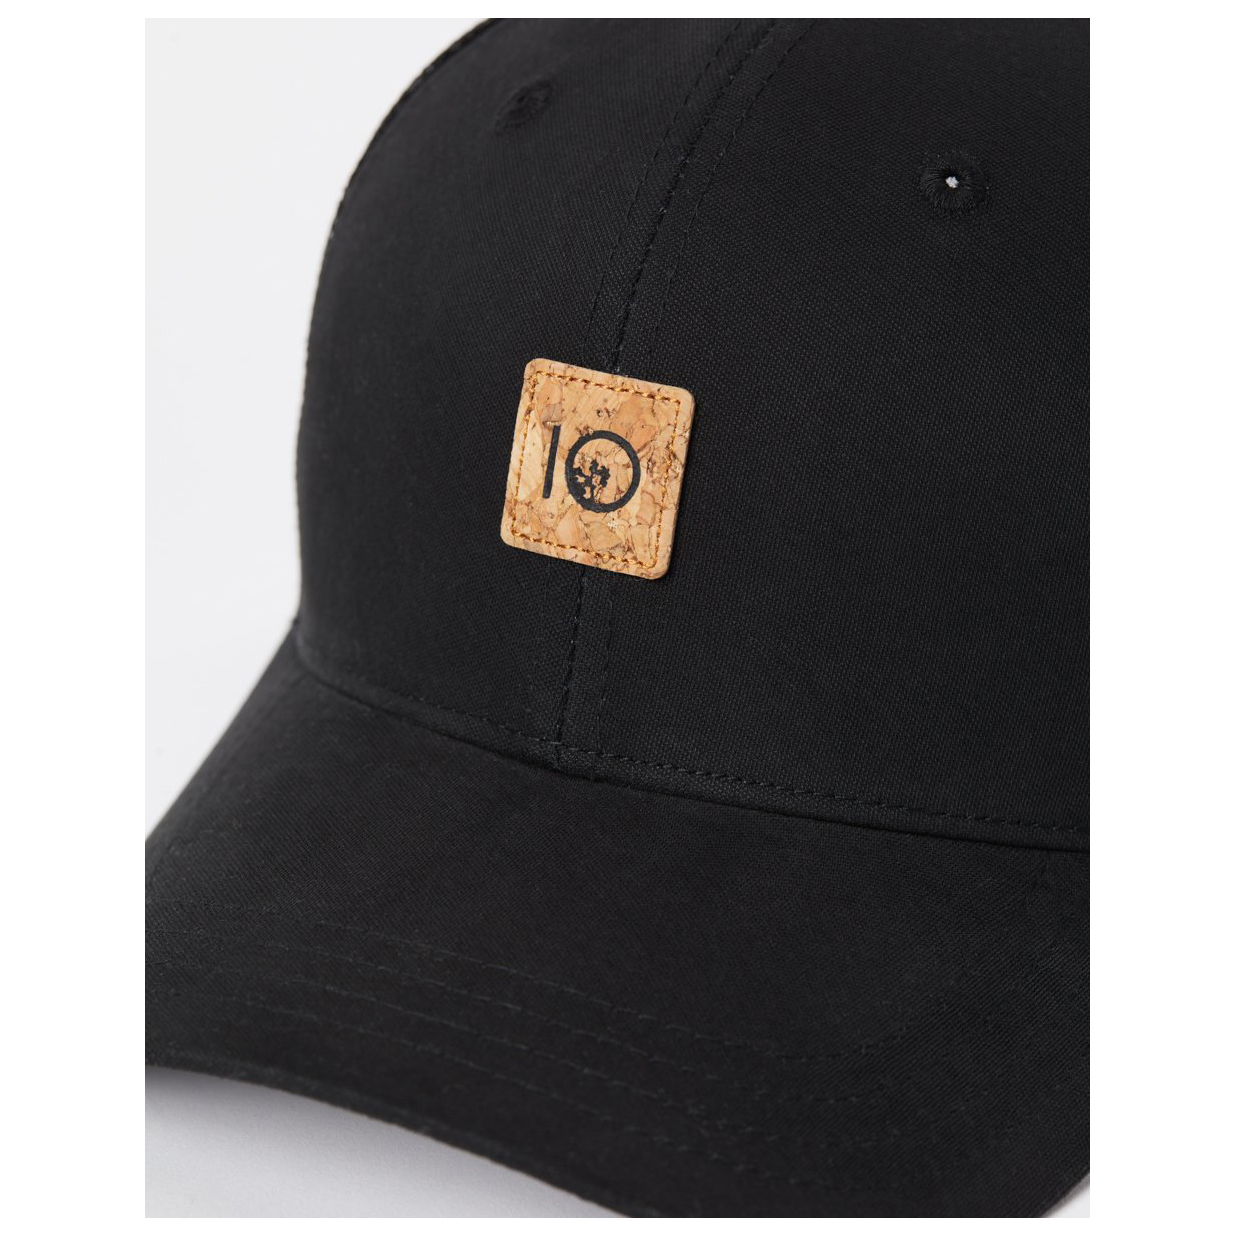 new products 98579 35501 tentree - Elevation Hat - Cap ...